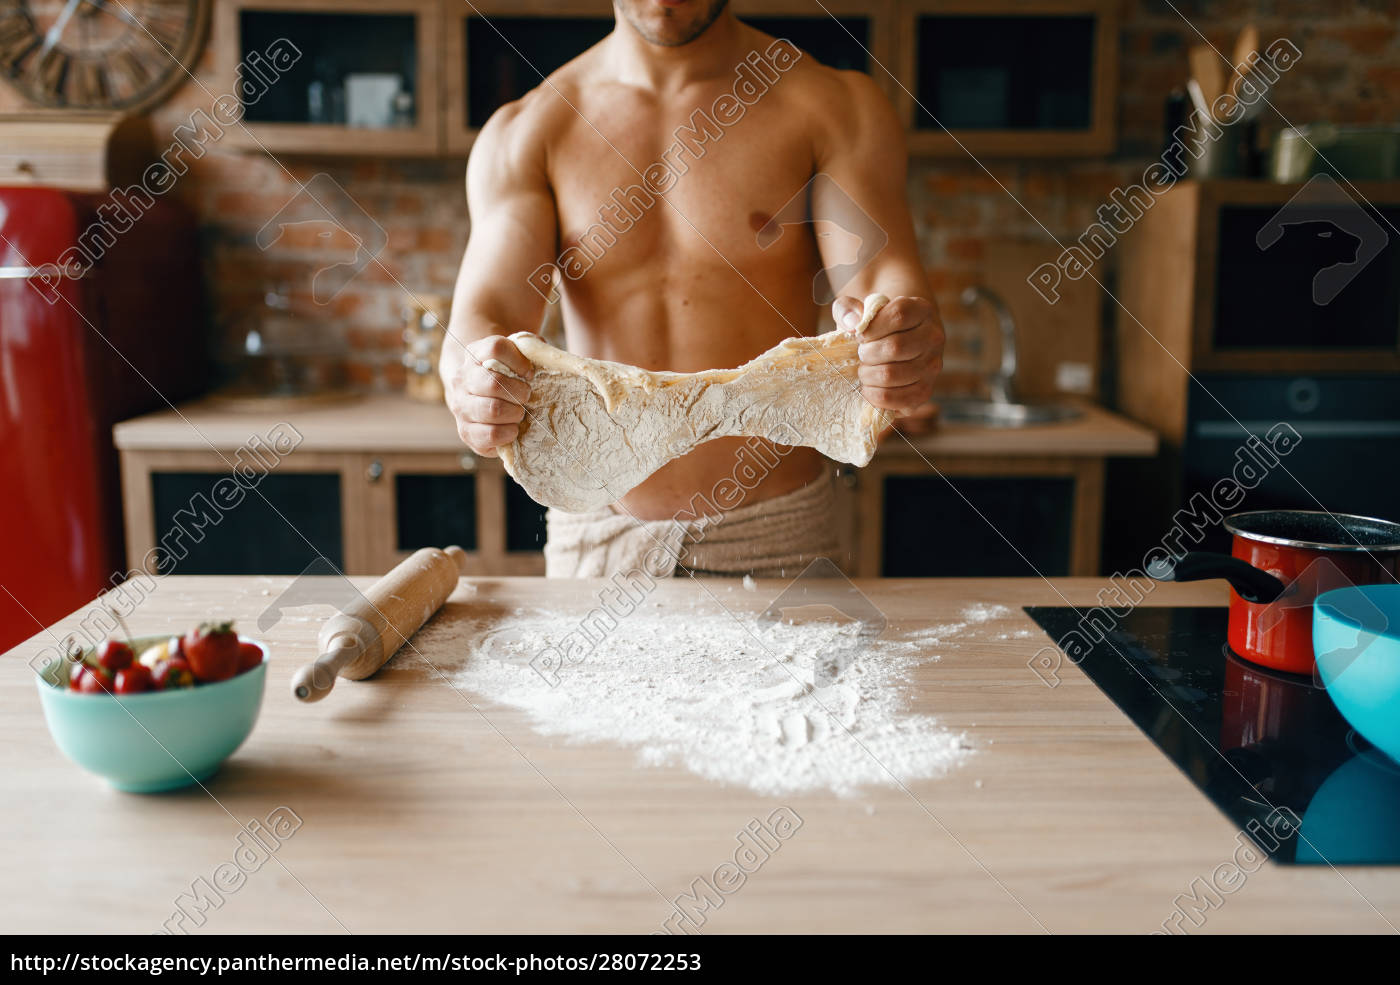 athletic, husband, in, underwear, cooking, on - 28072253